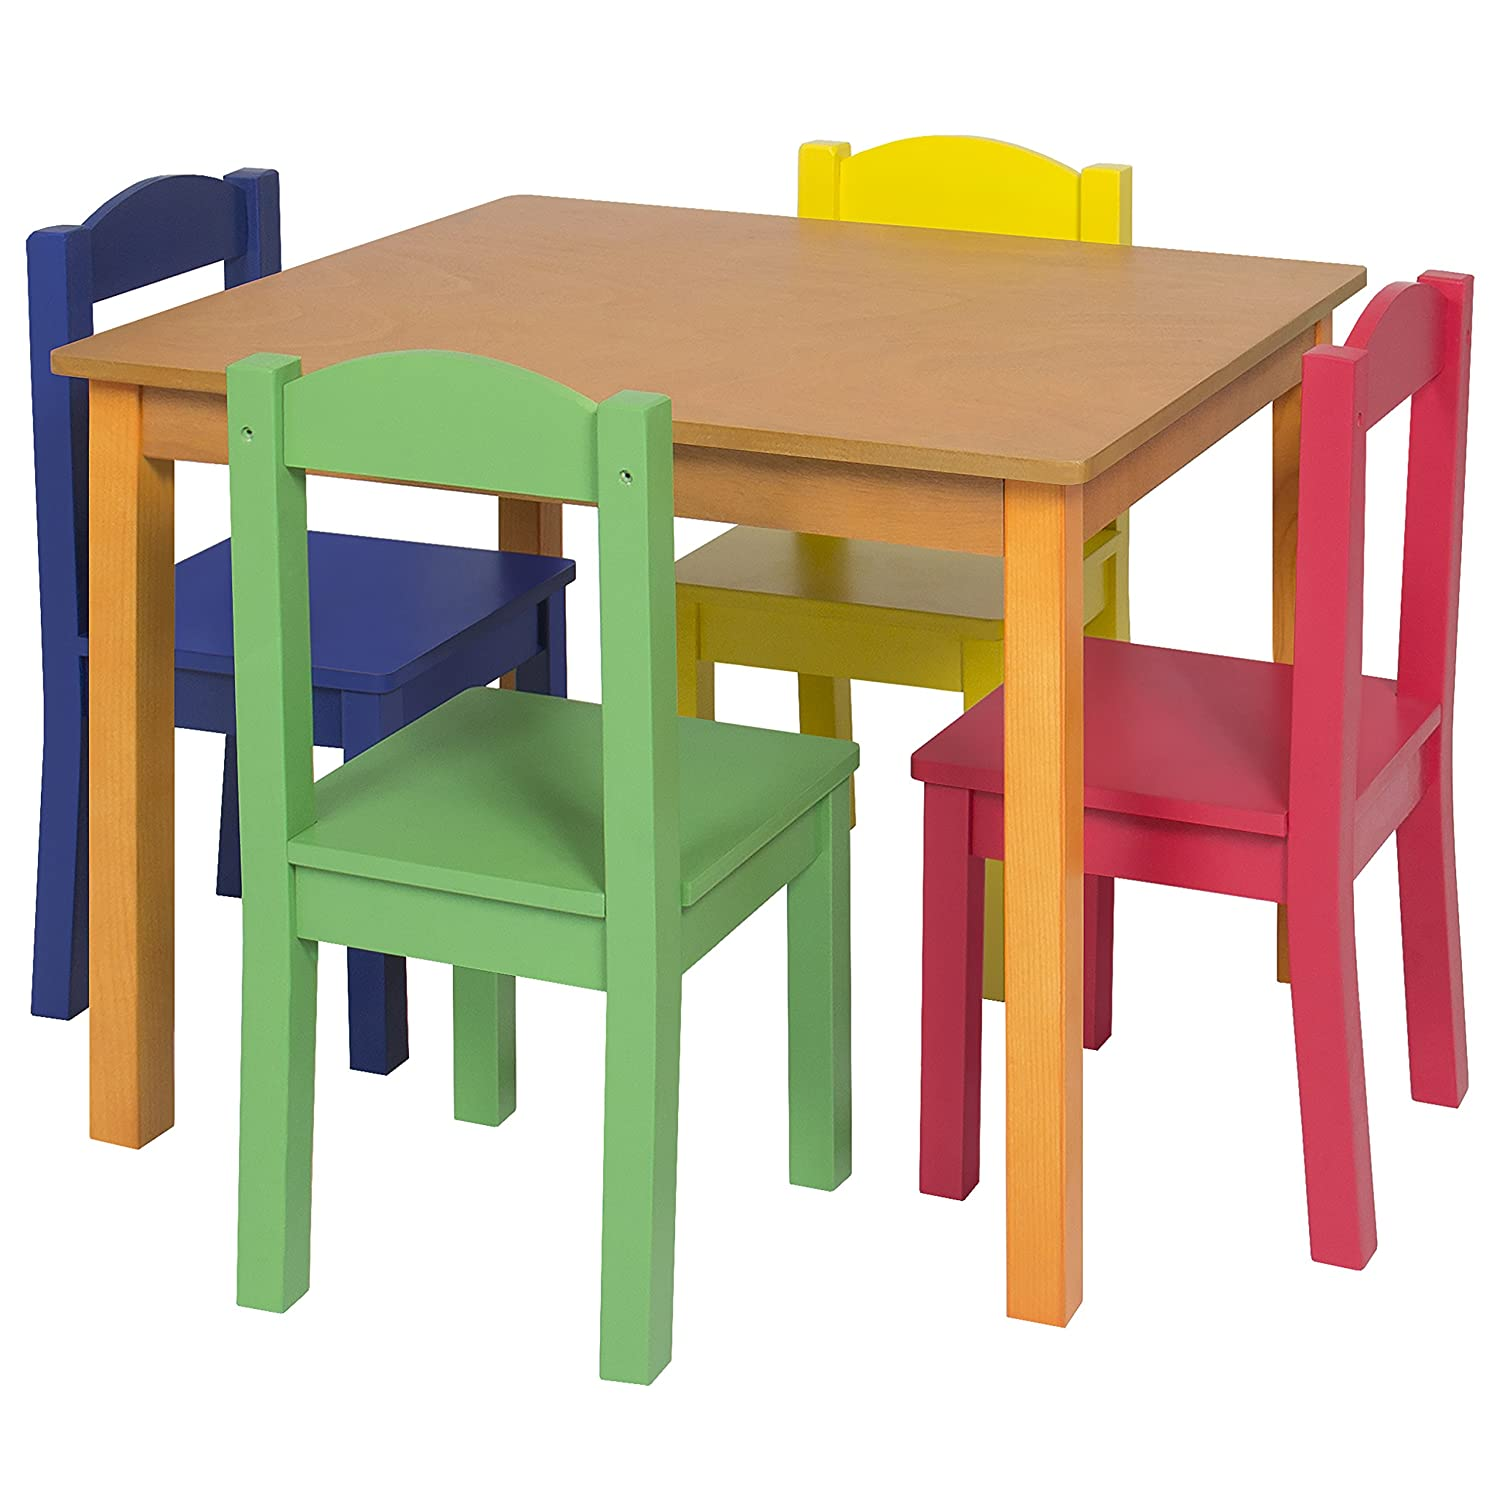 Best Choice Products Kids Wooden Table and 4 Chair Set Furniture- Primary/Natural SKY3000